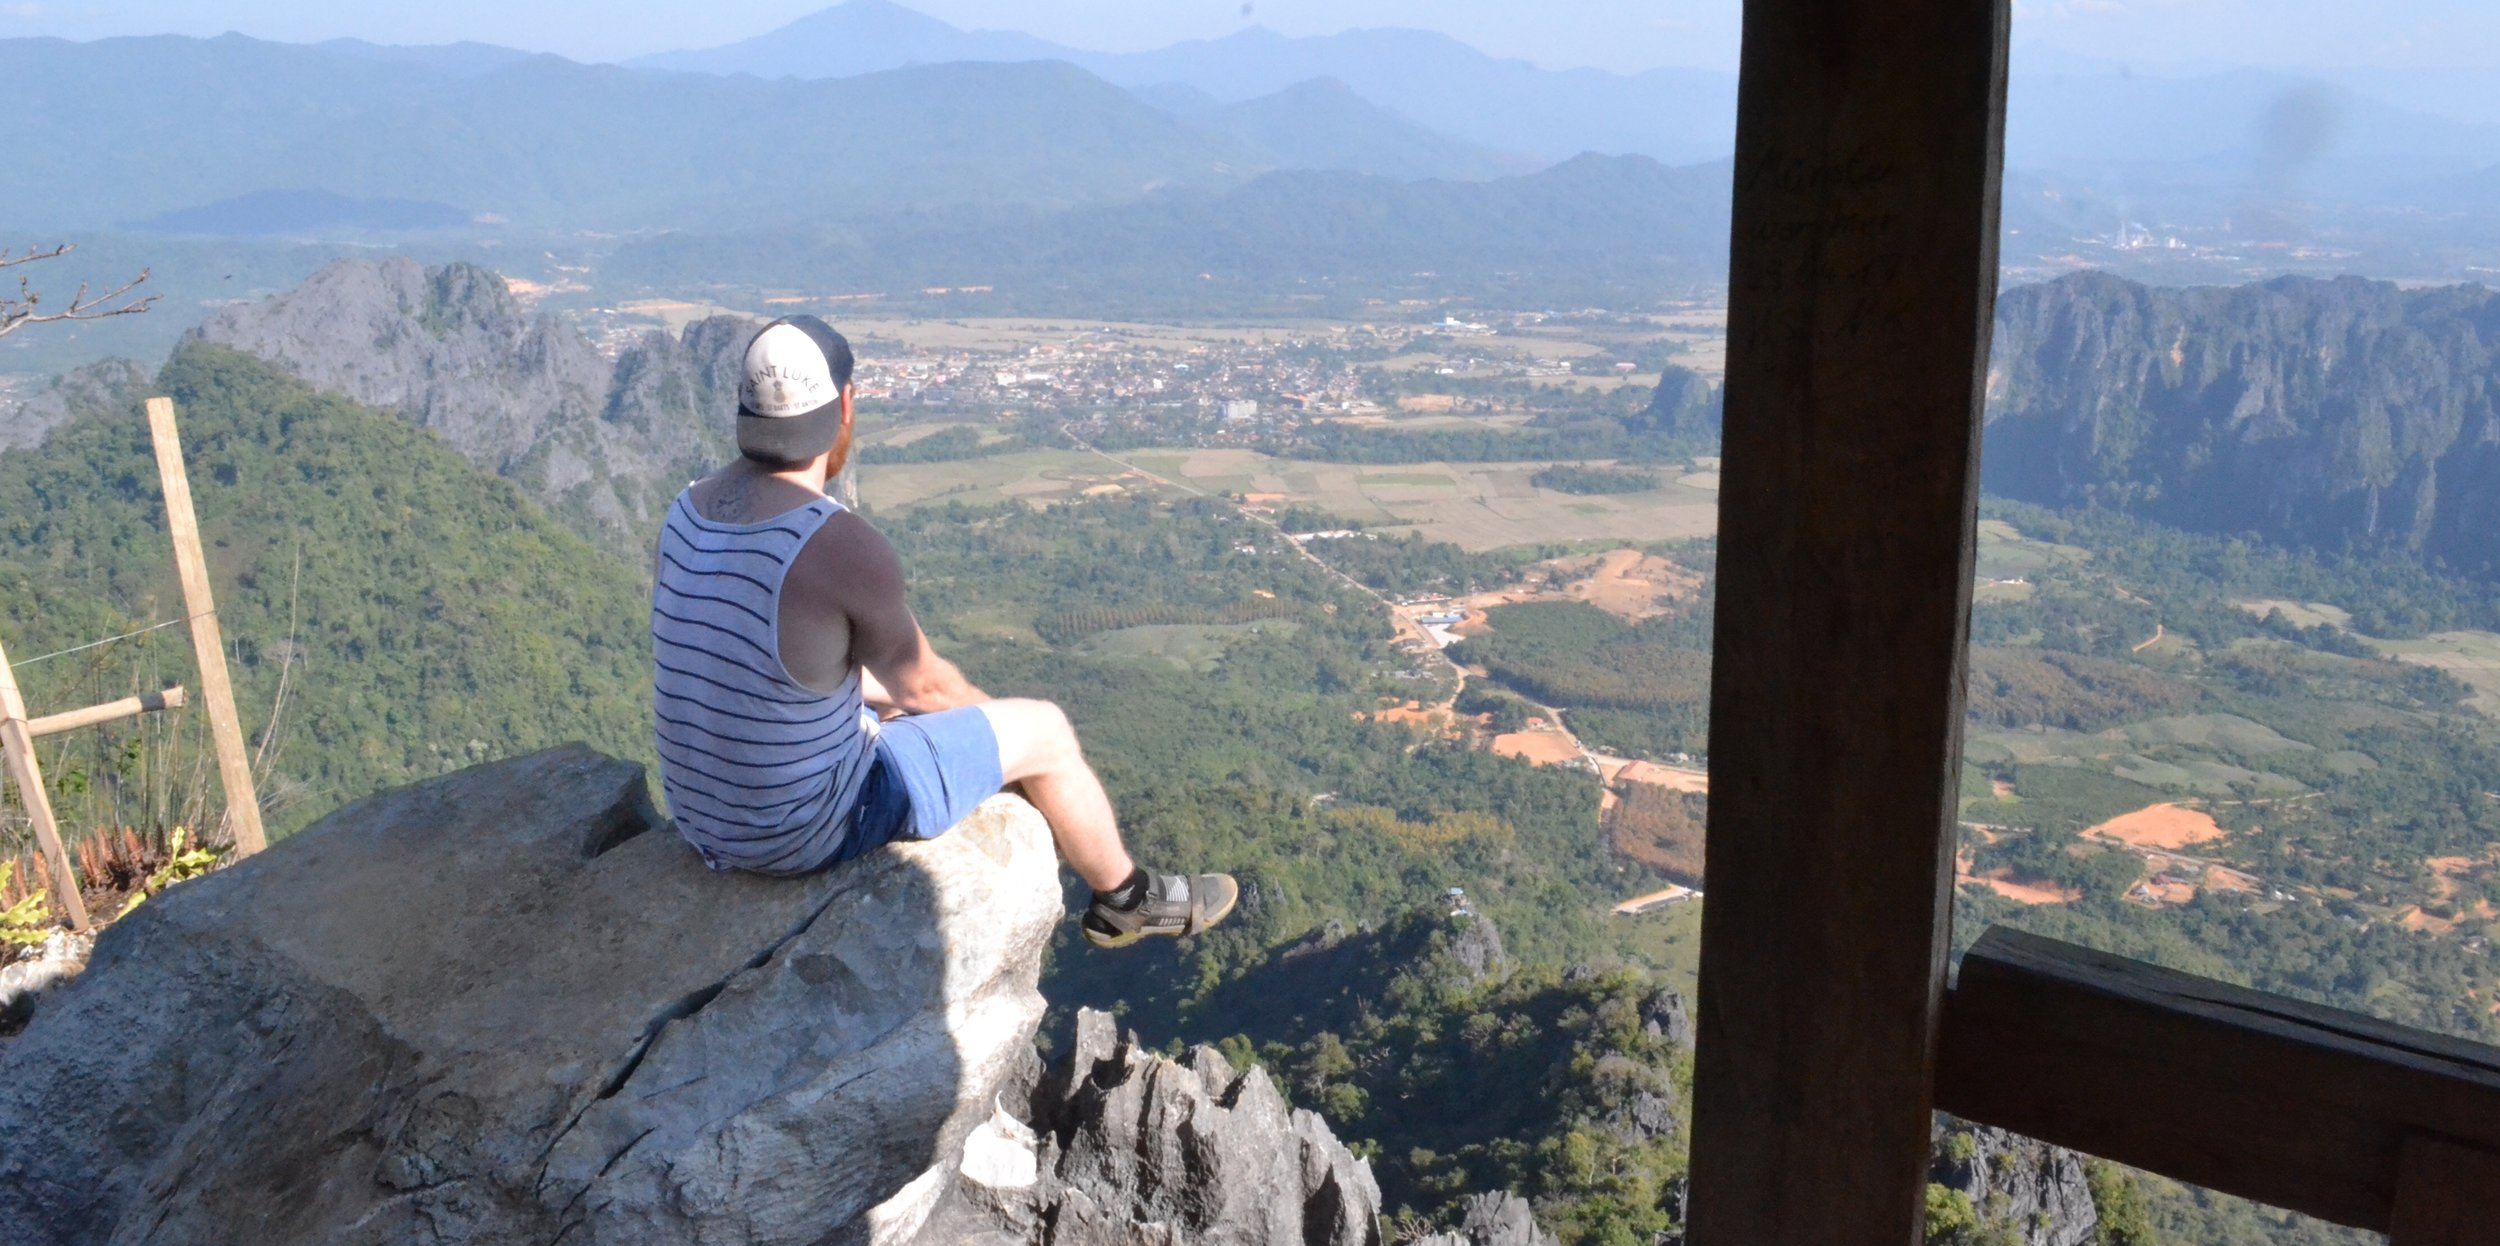 Views from Pha Ngeun mountain over looking Vang Vieng. Trying to over come my fear of heights.